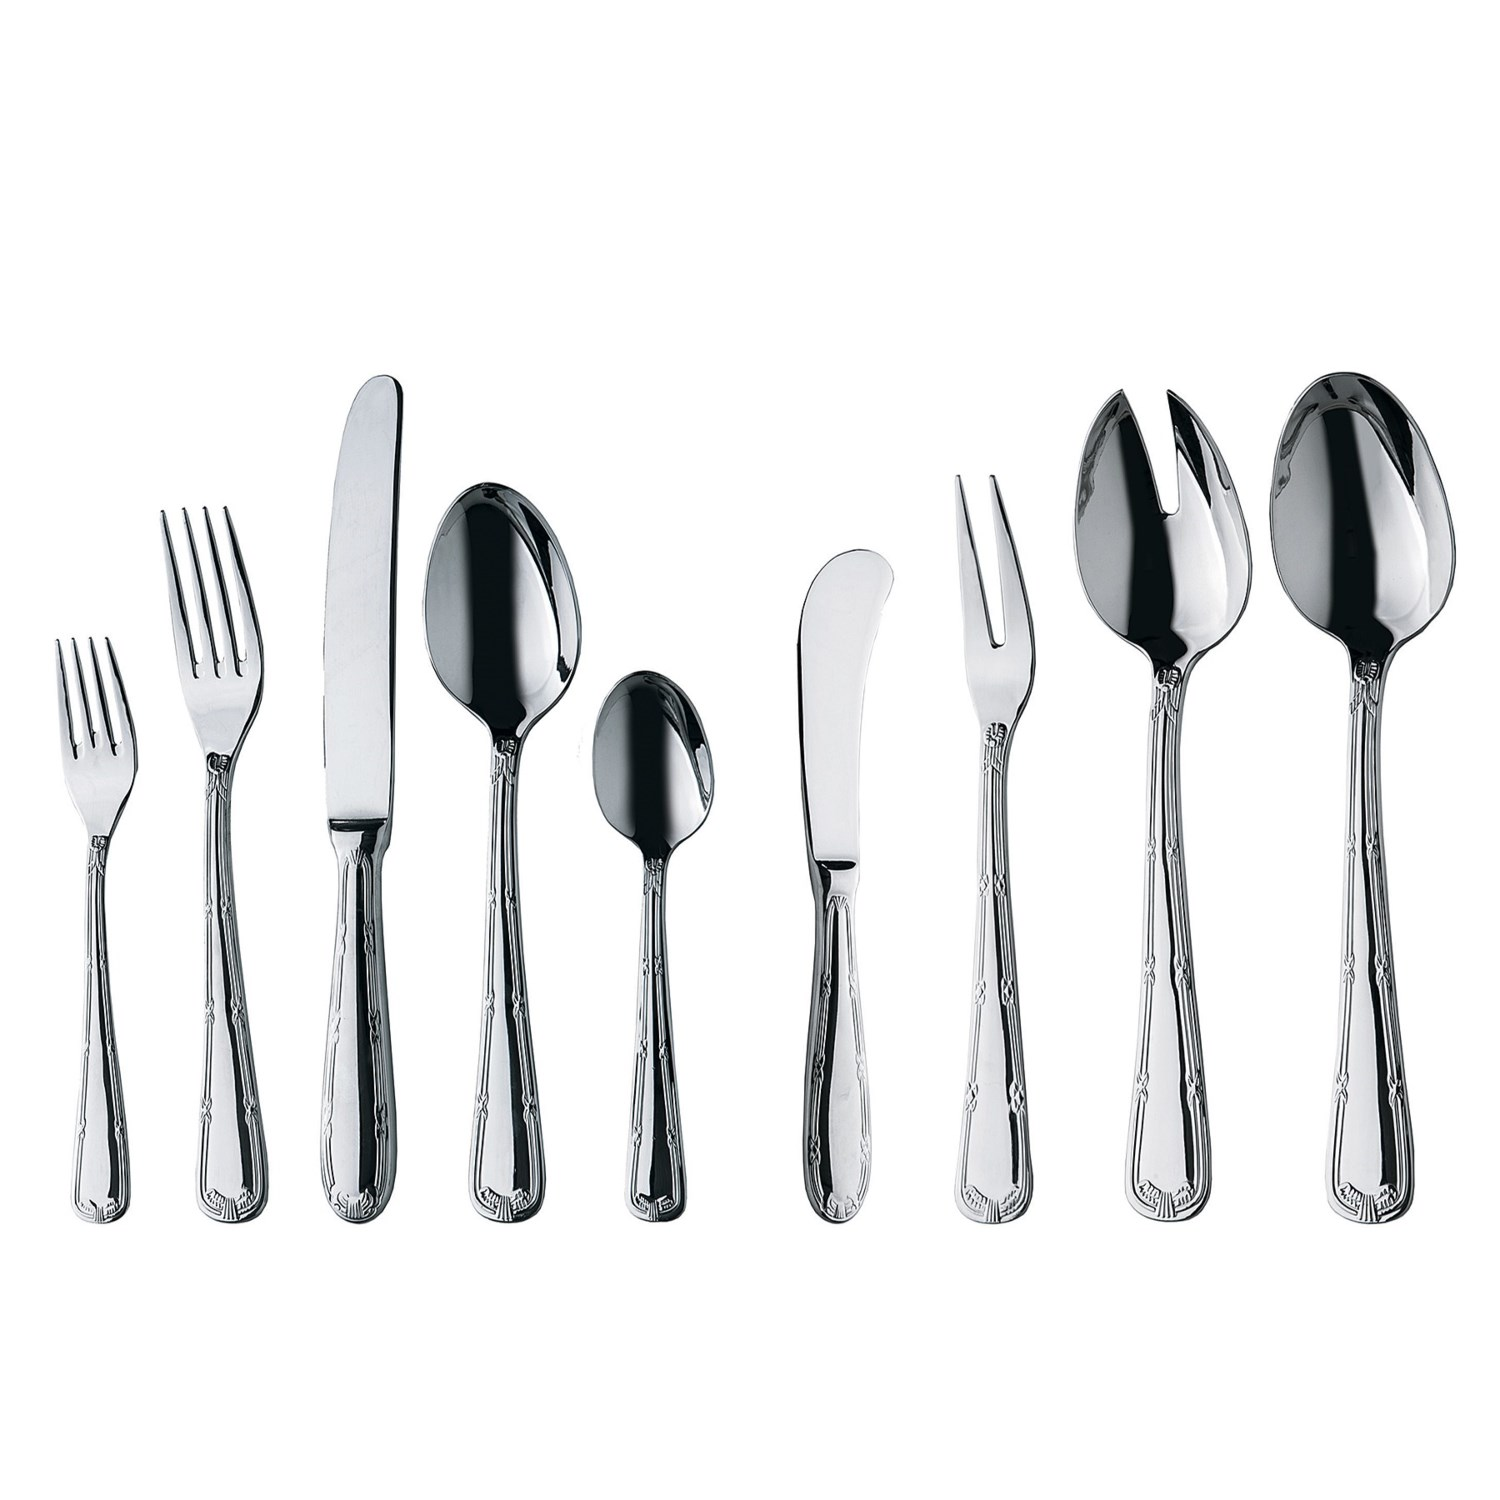 wmf crossband flatware set cromargan 18 10 stainless steel 44 piece in stainless. Black Bedroom Furniture Sets. Home Design Ideas